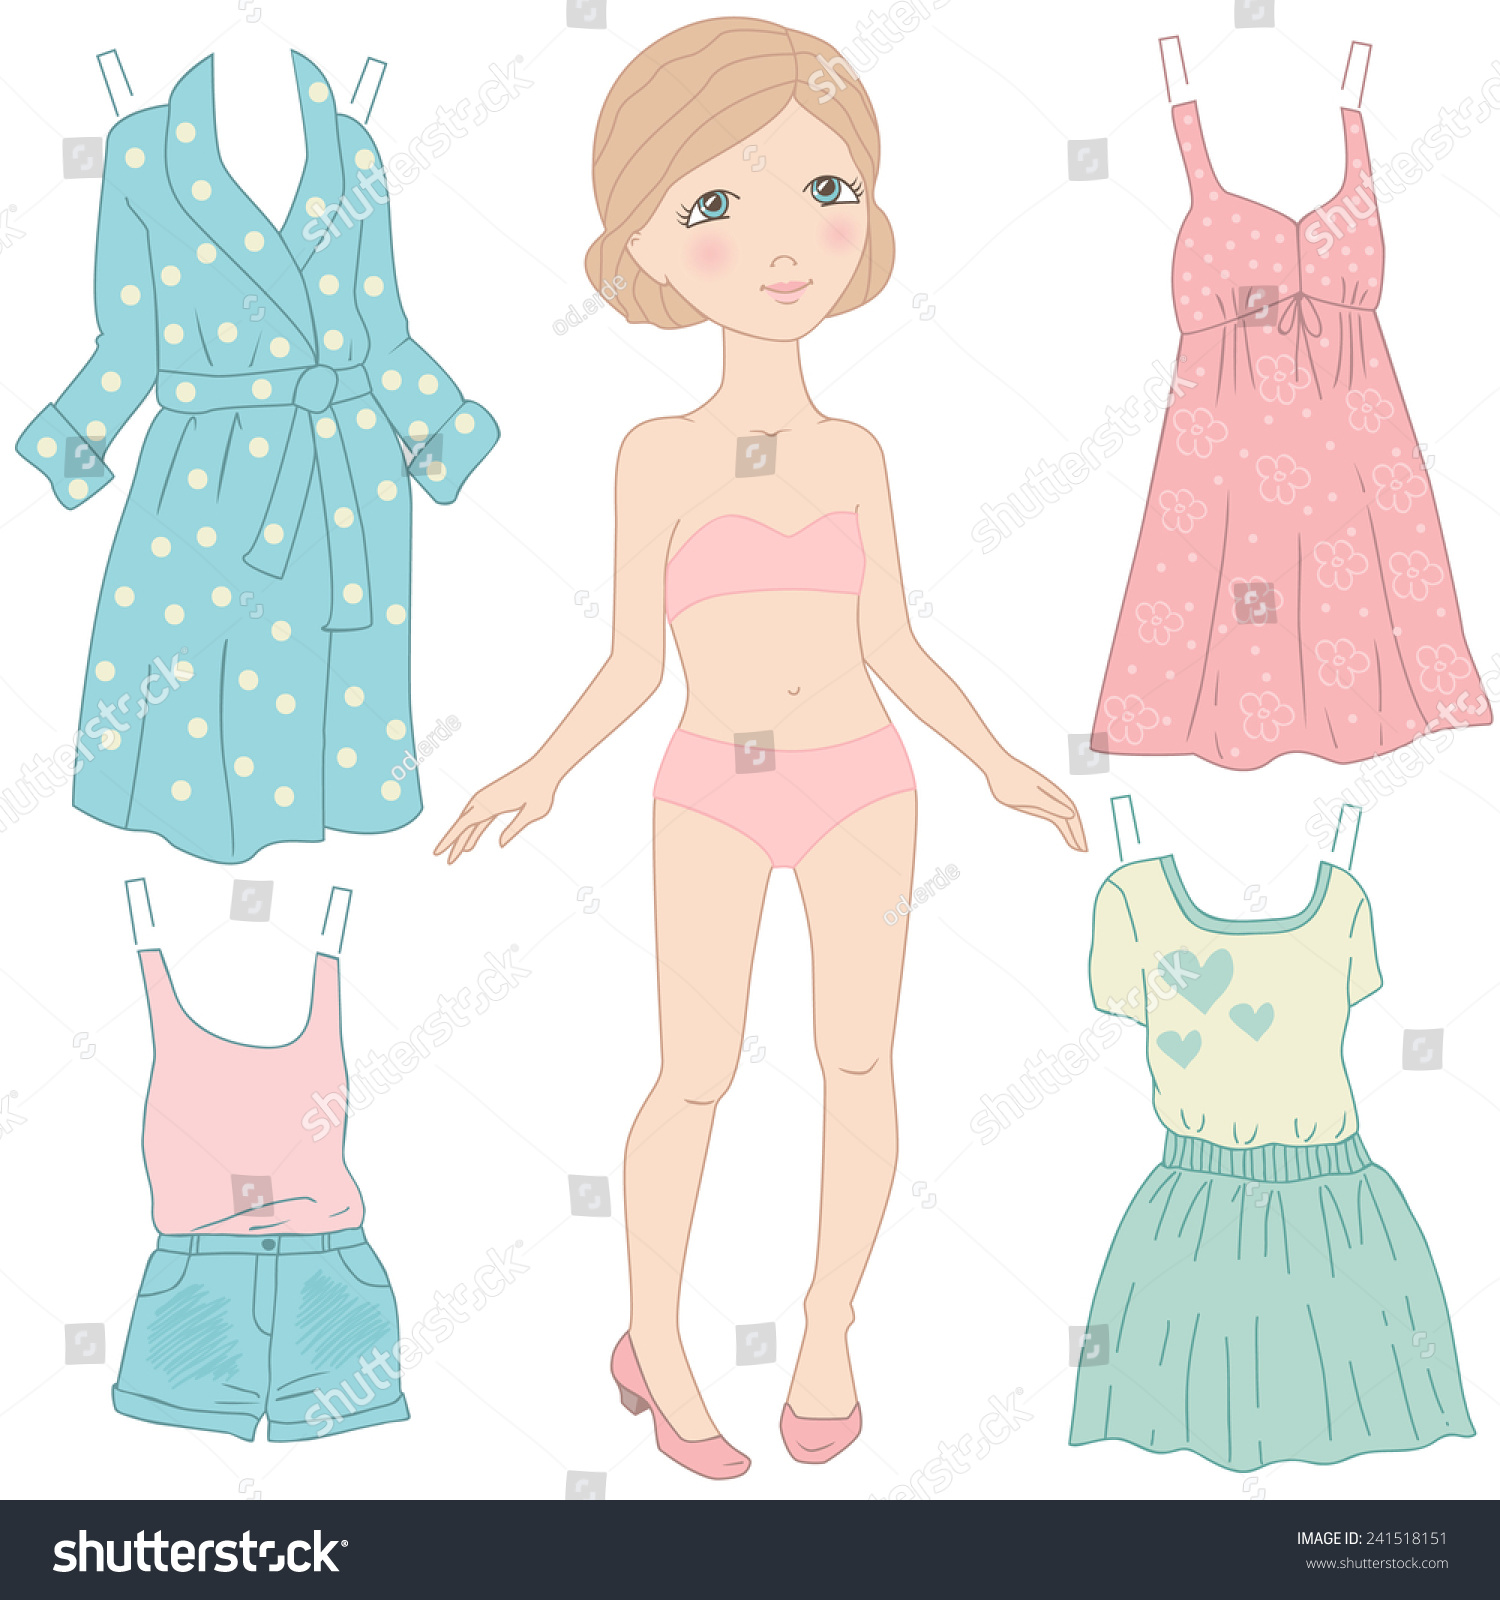 Dress Paper Doll Women Clothing Gamevector Stock Vector Royalty